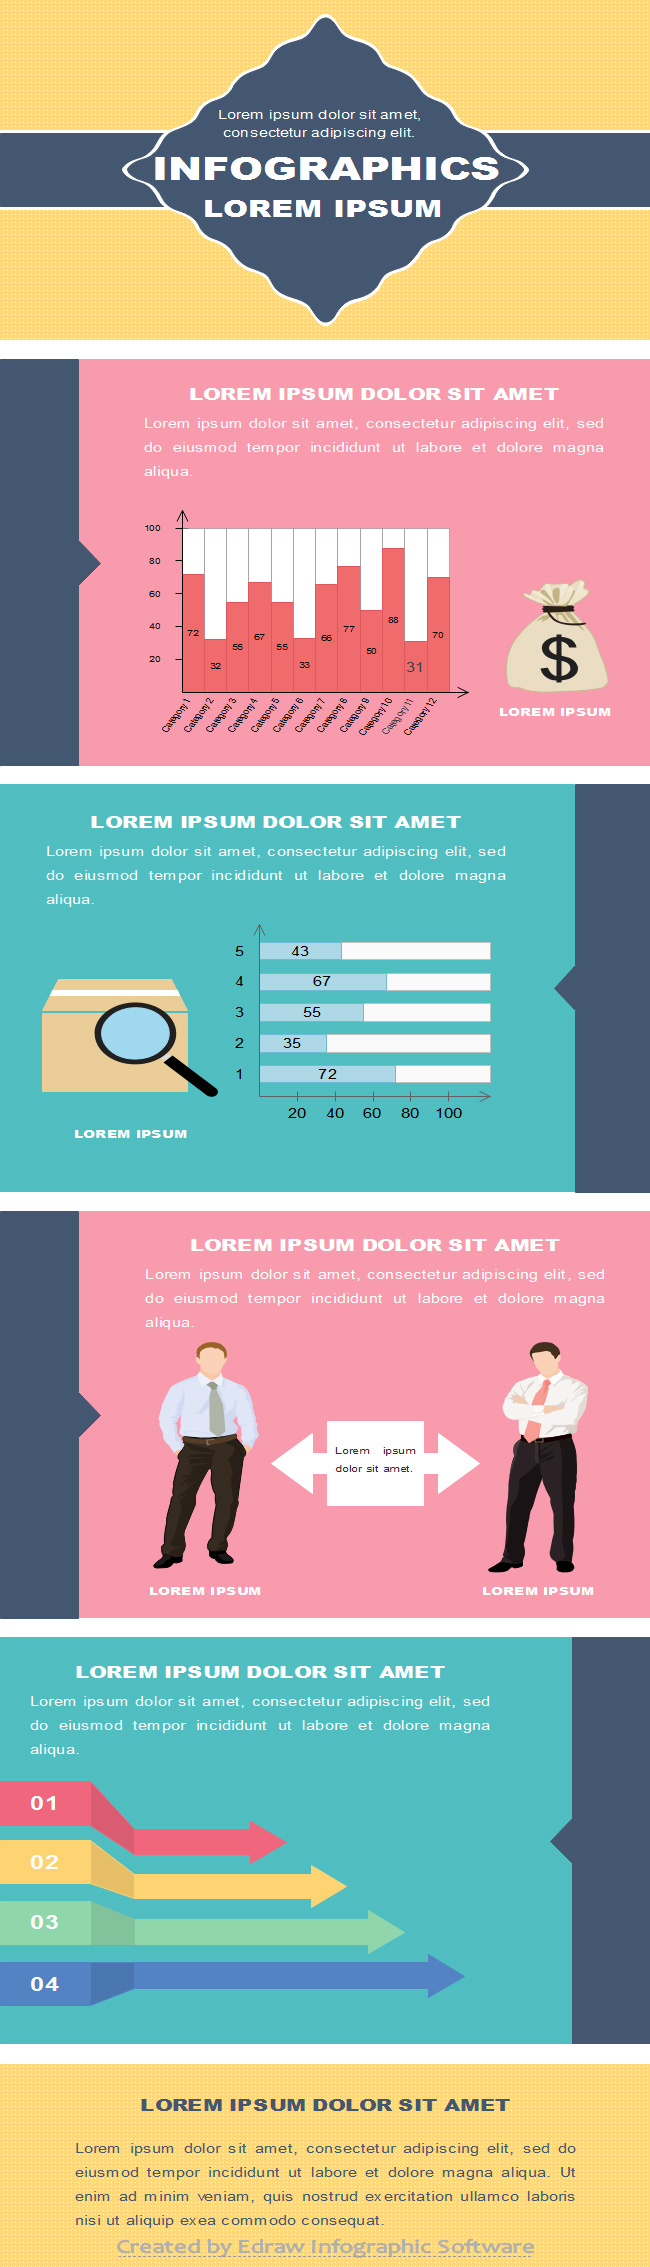 business-relationship-infographic